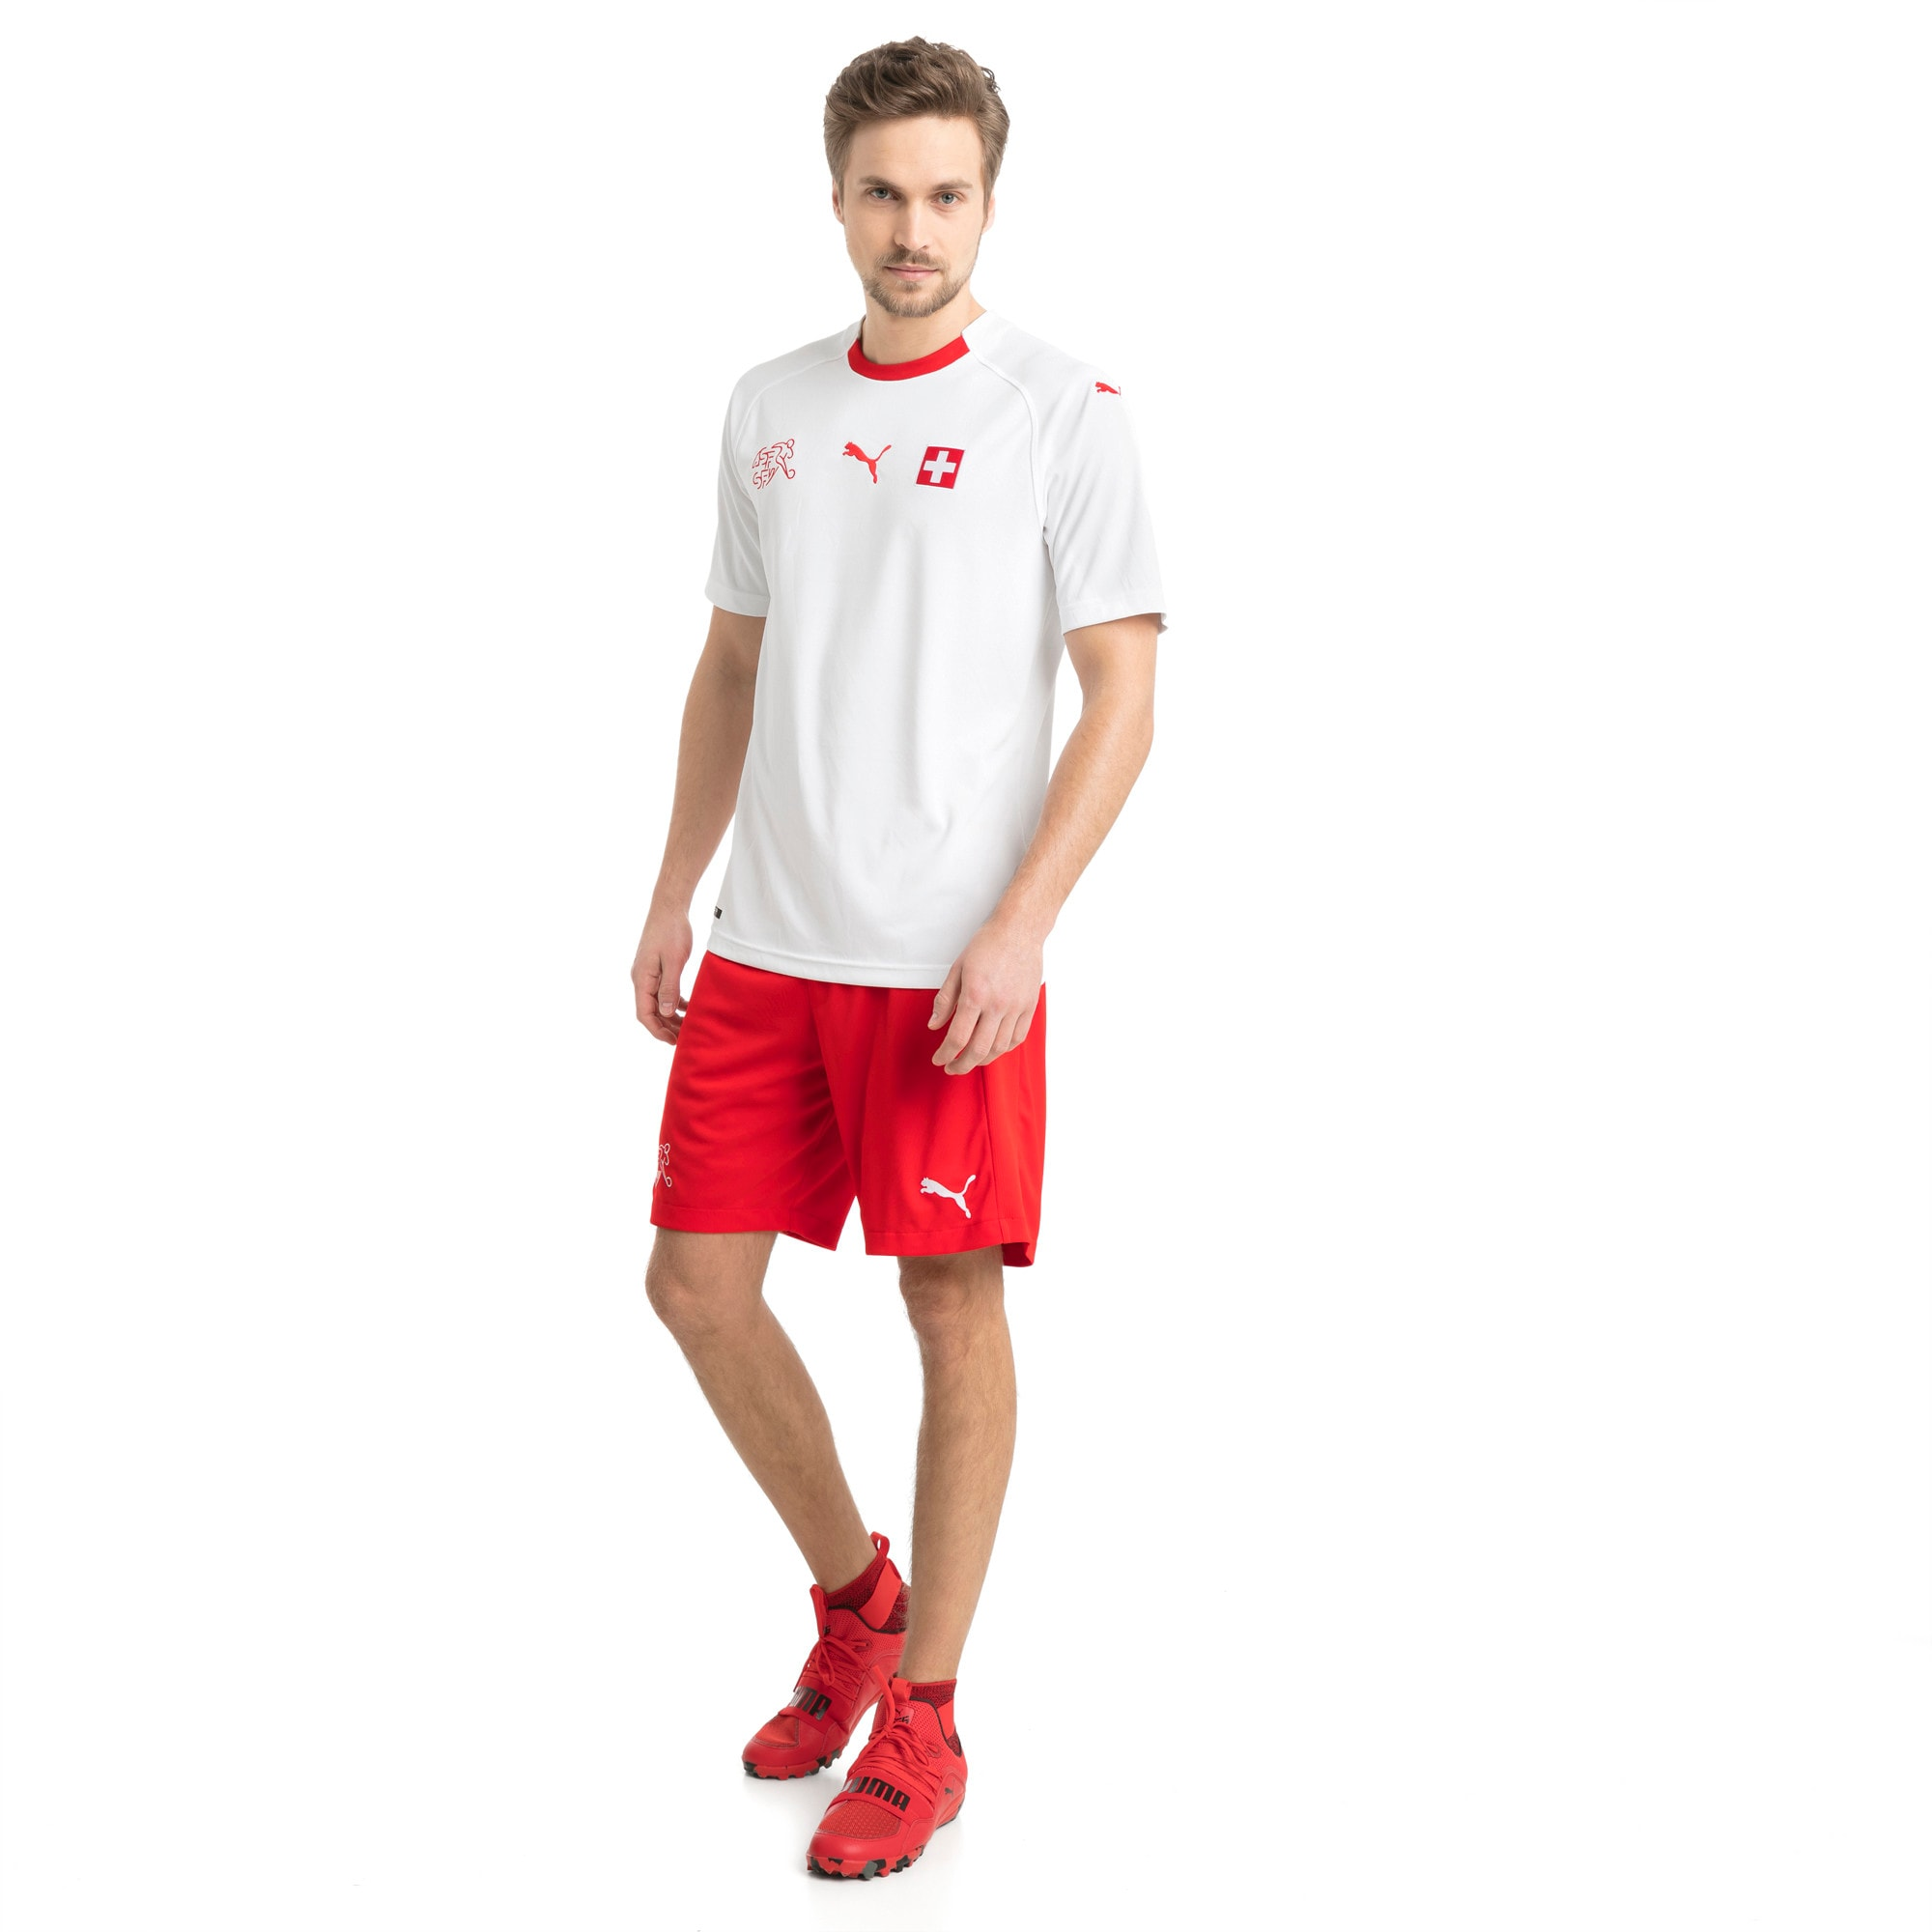 Thumbnail 4 of Switzerland Replica Shorts, Puma Red, medium